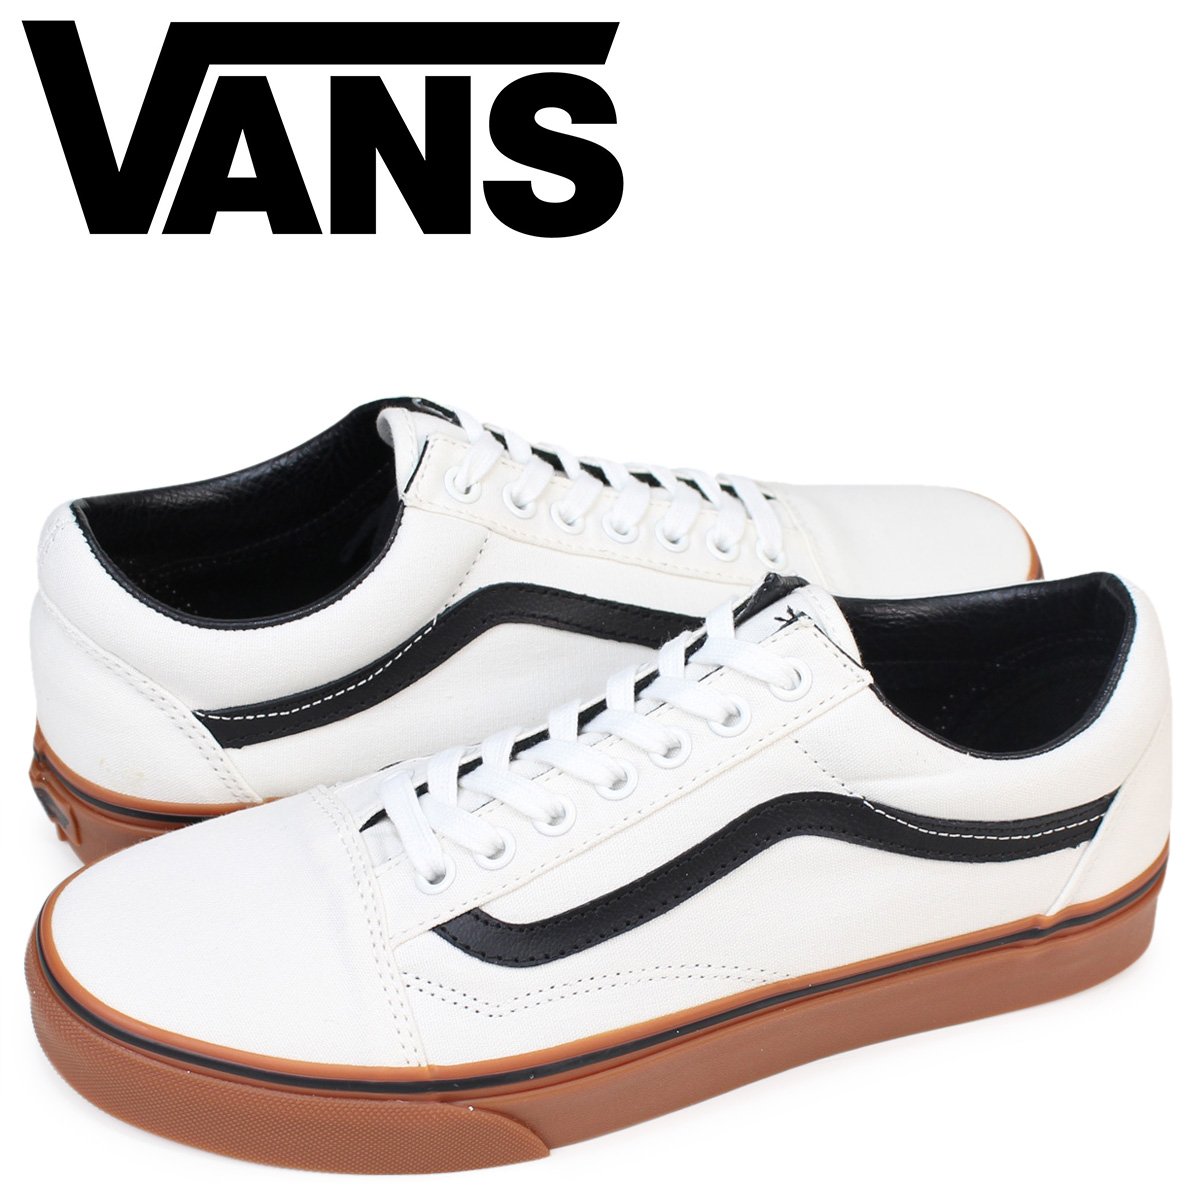 vans old skool white gum